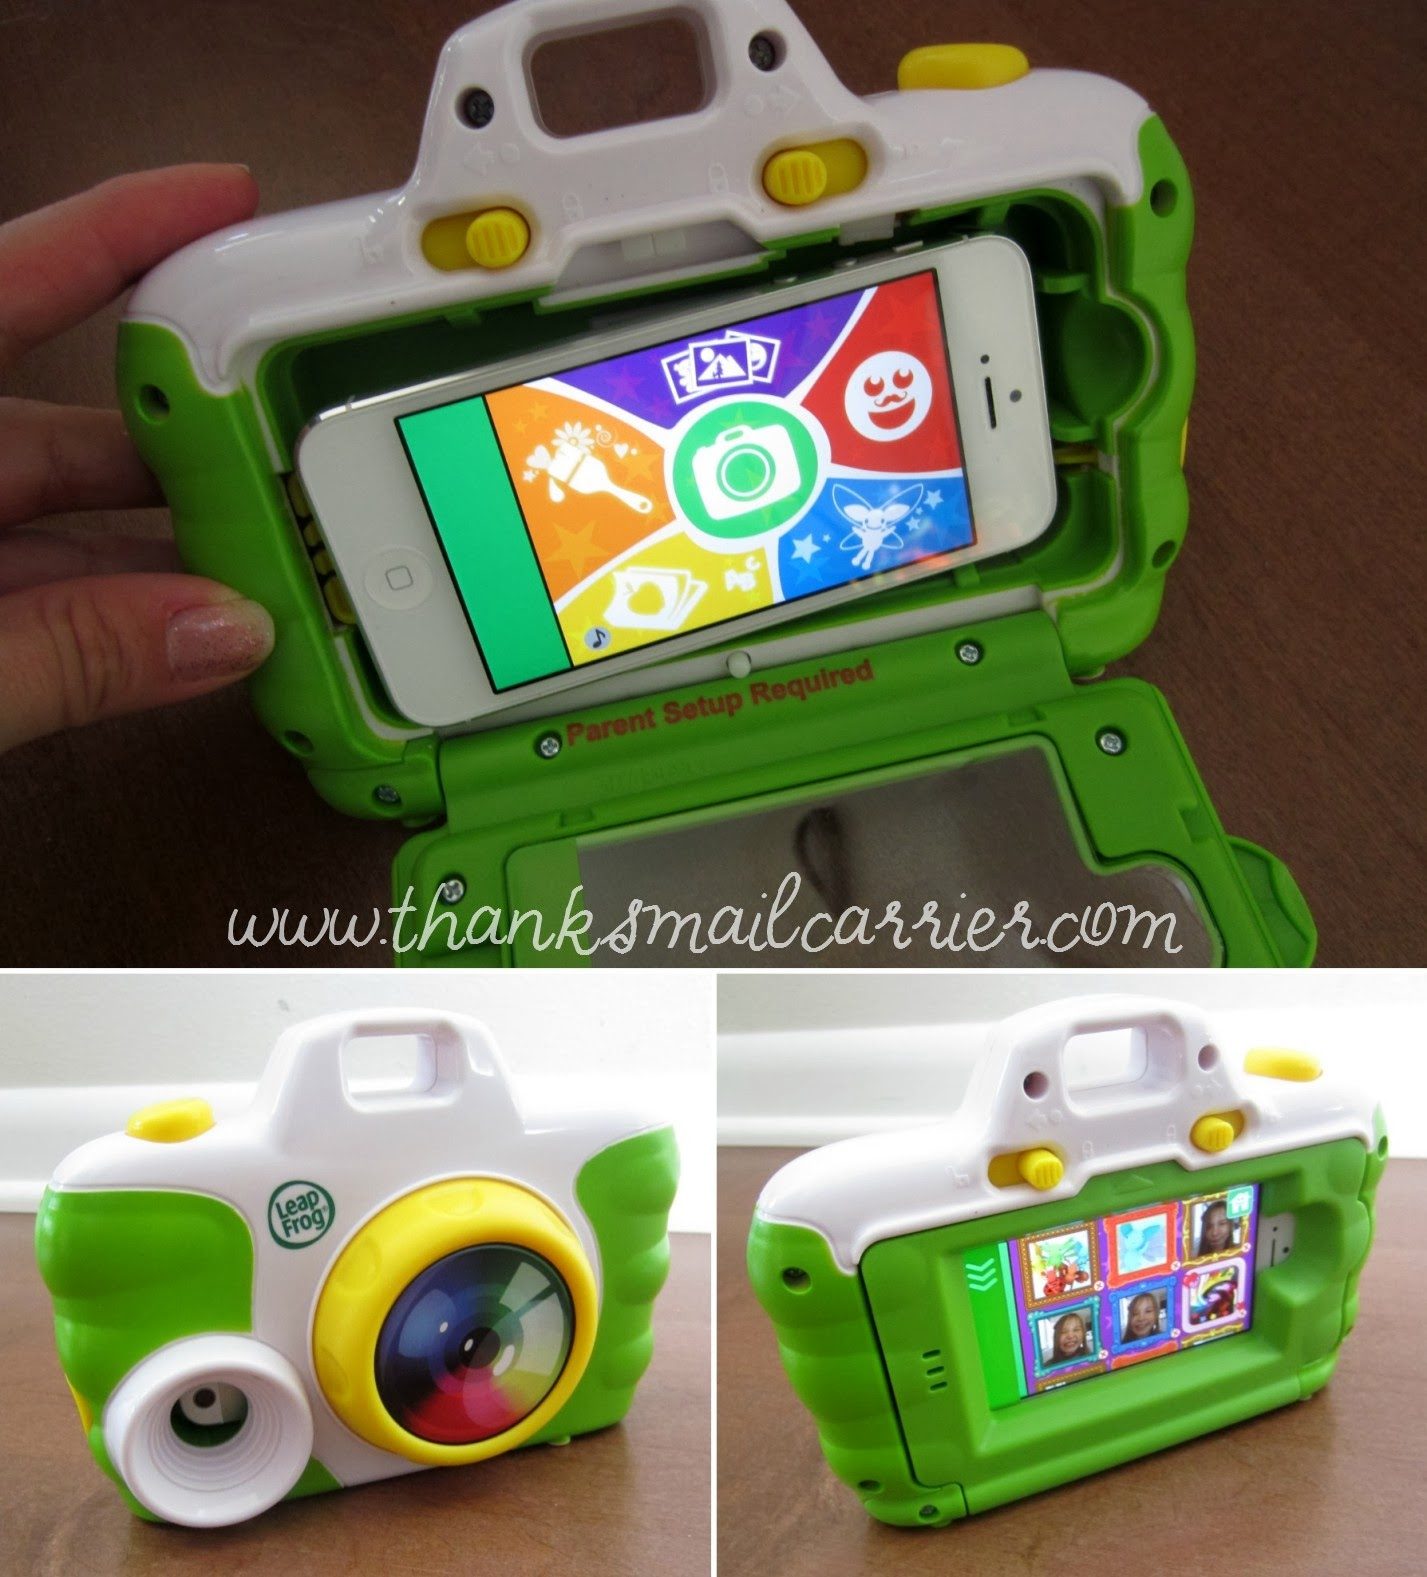 LeapFrog creativity camera assembly